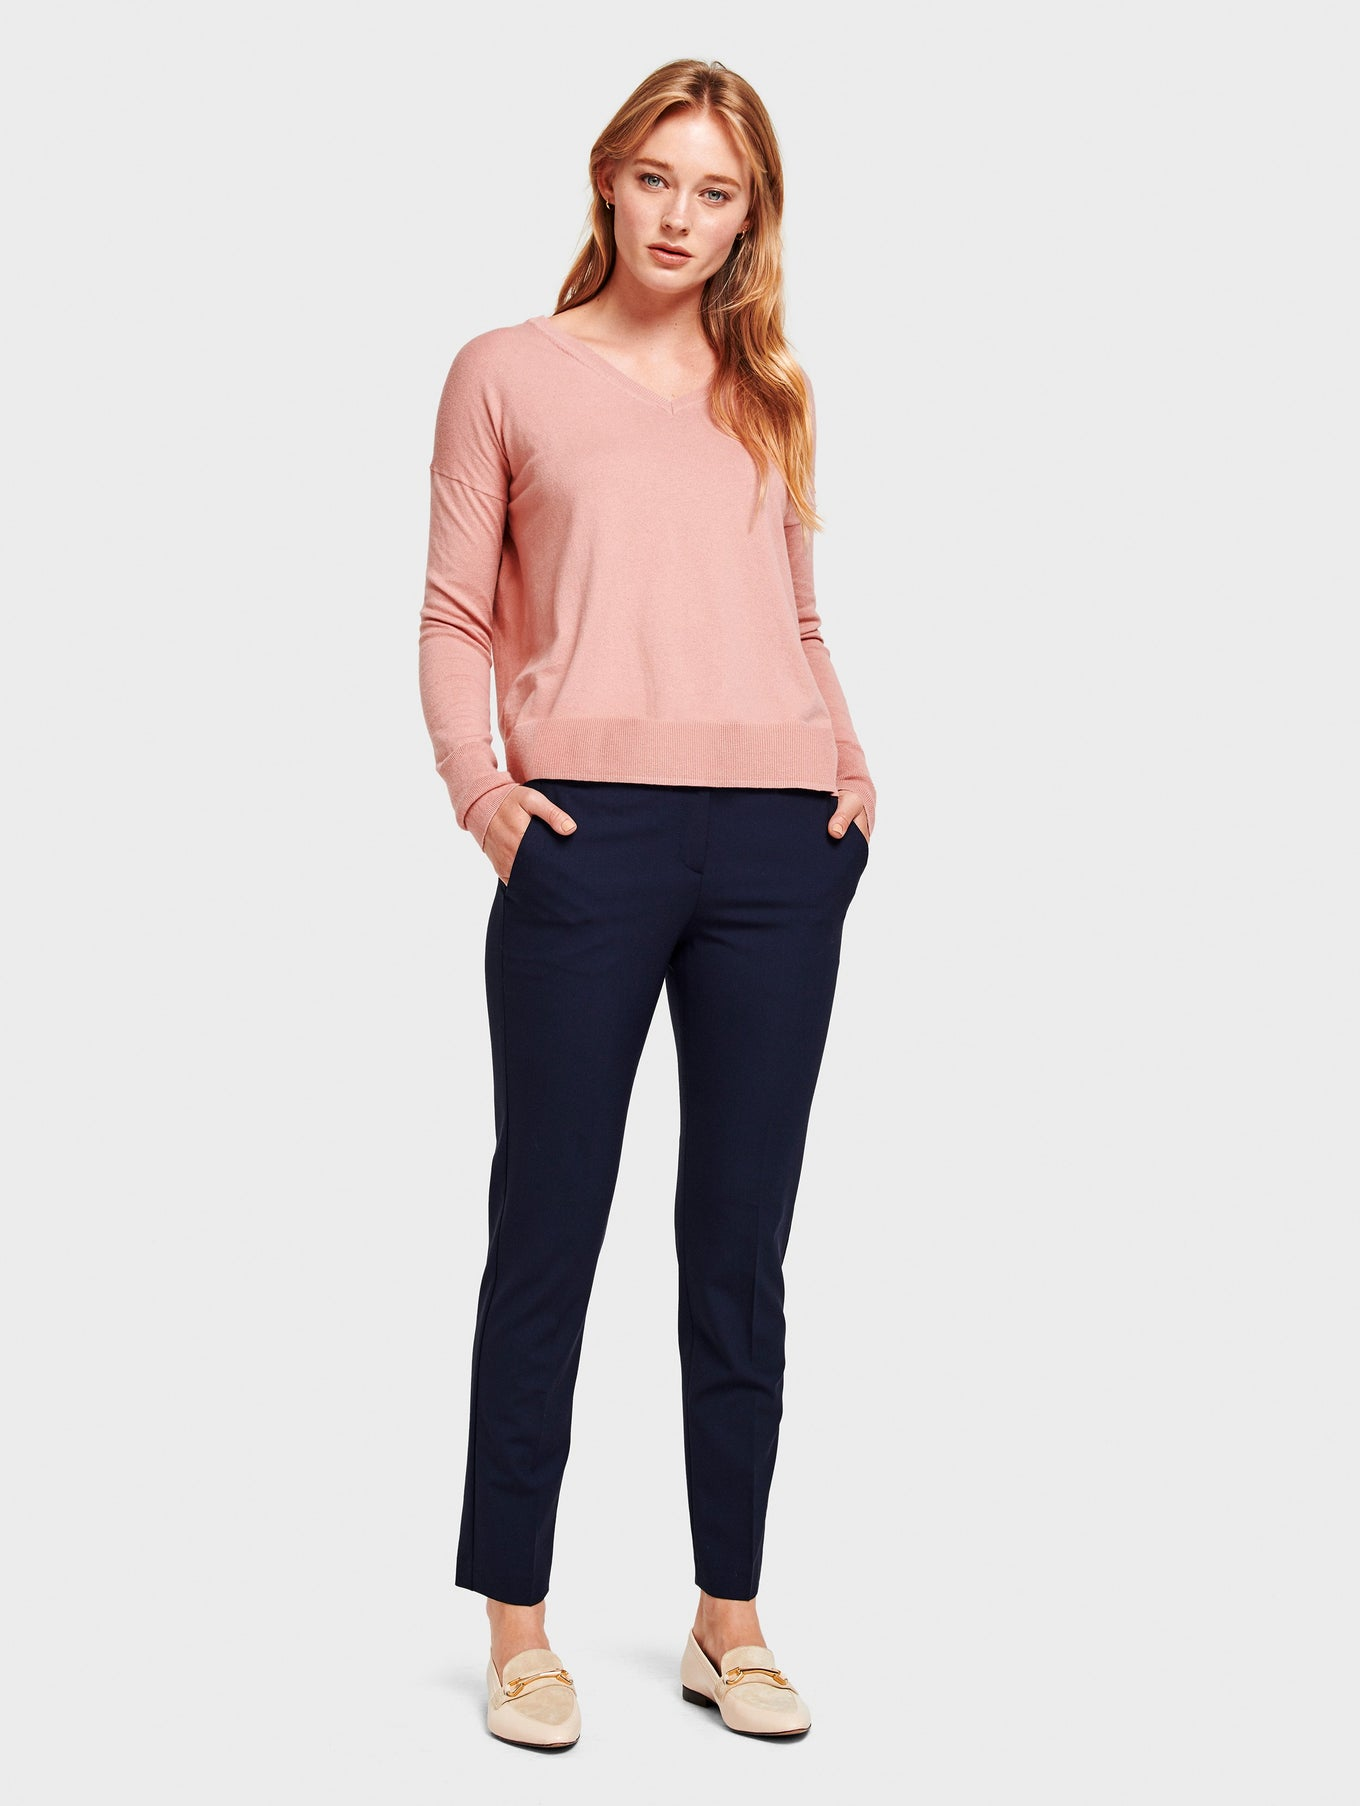 Drop Shoulder V Neck - Canyon Rose Heather - Image 5